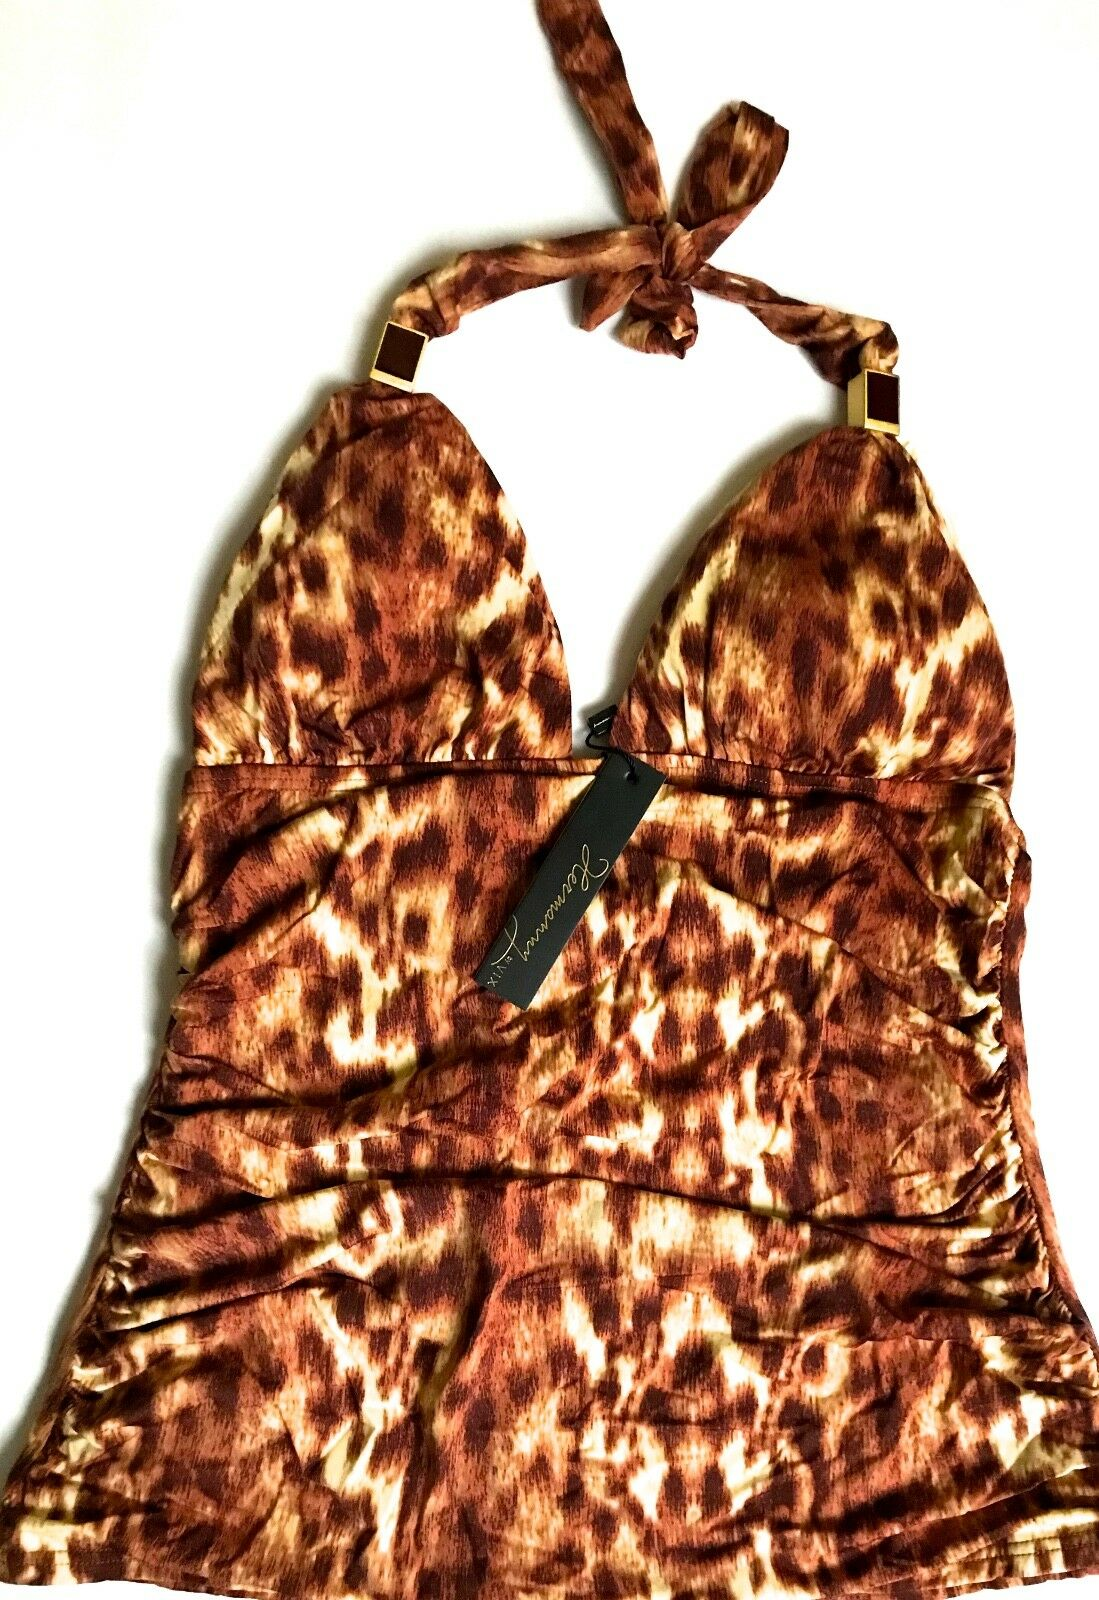 BRAND NWT  79.00 HERMANNY BY VIX SWIMSUIT ANIMAL PRINT TANKINI TOP SIZE 6